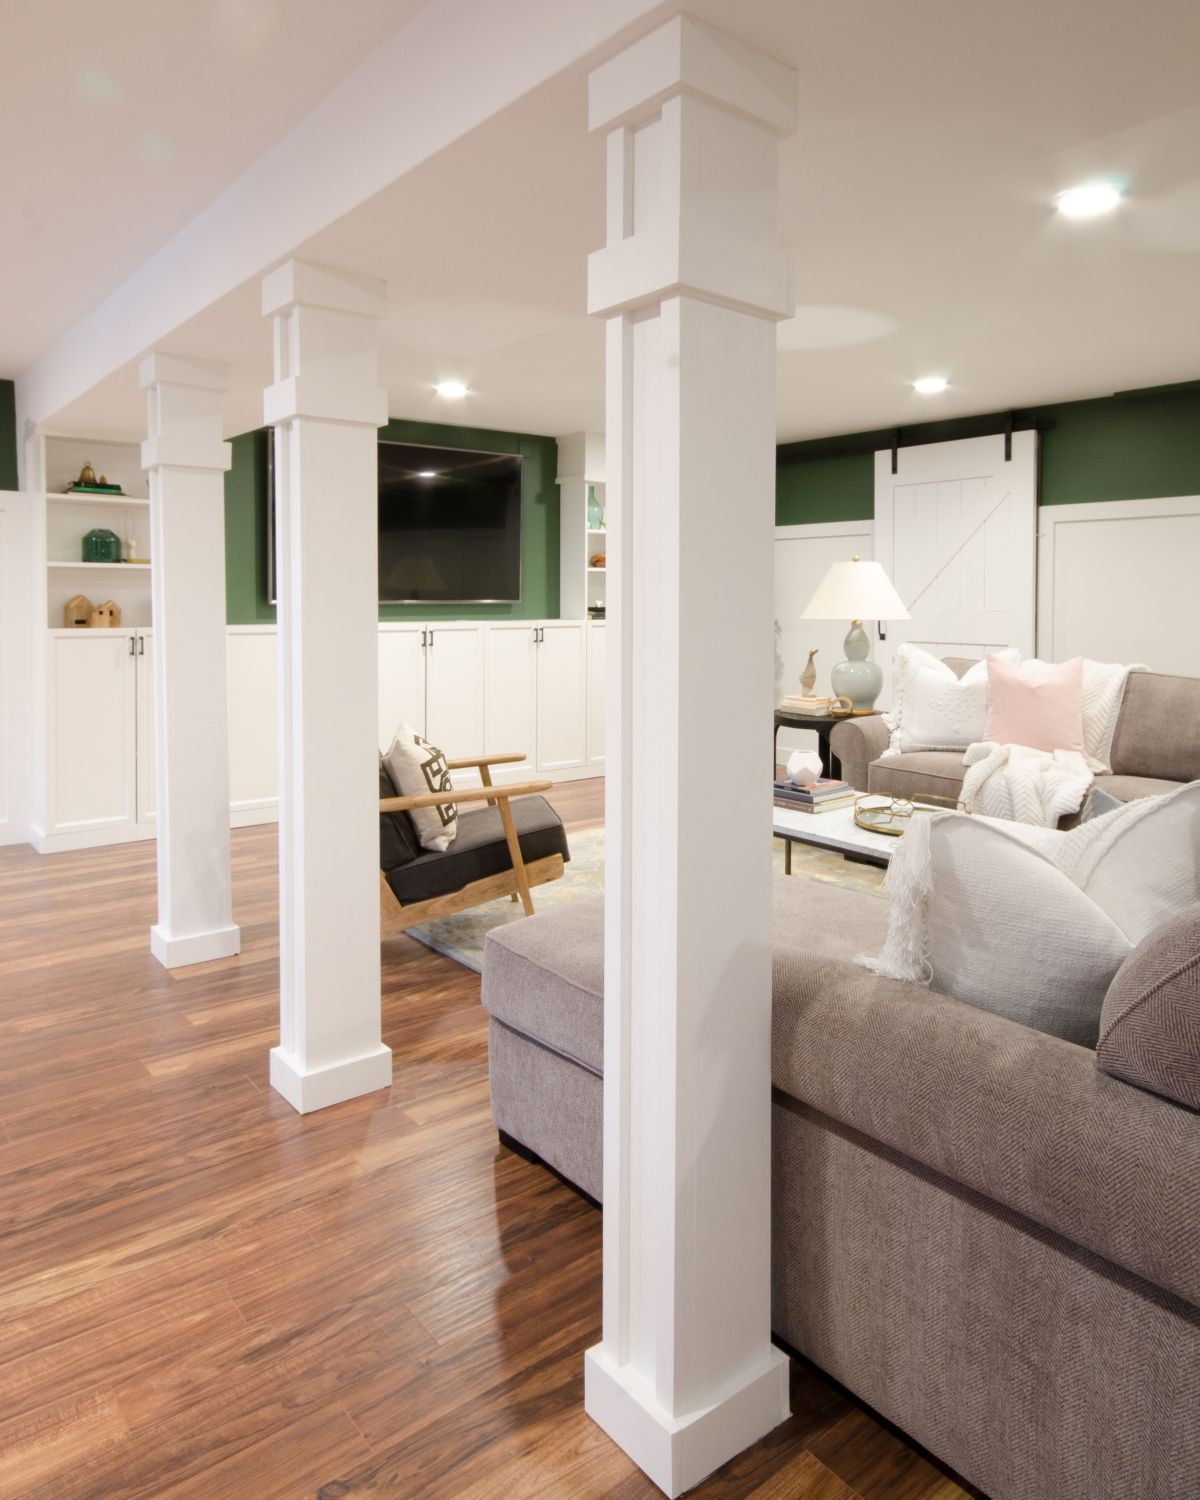 7 Basement Ideas On A Budget Chic Convenience For The Home: How To Turn Support Poles Into Columns